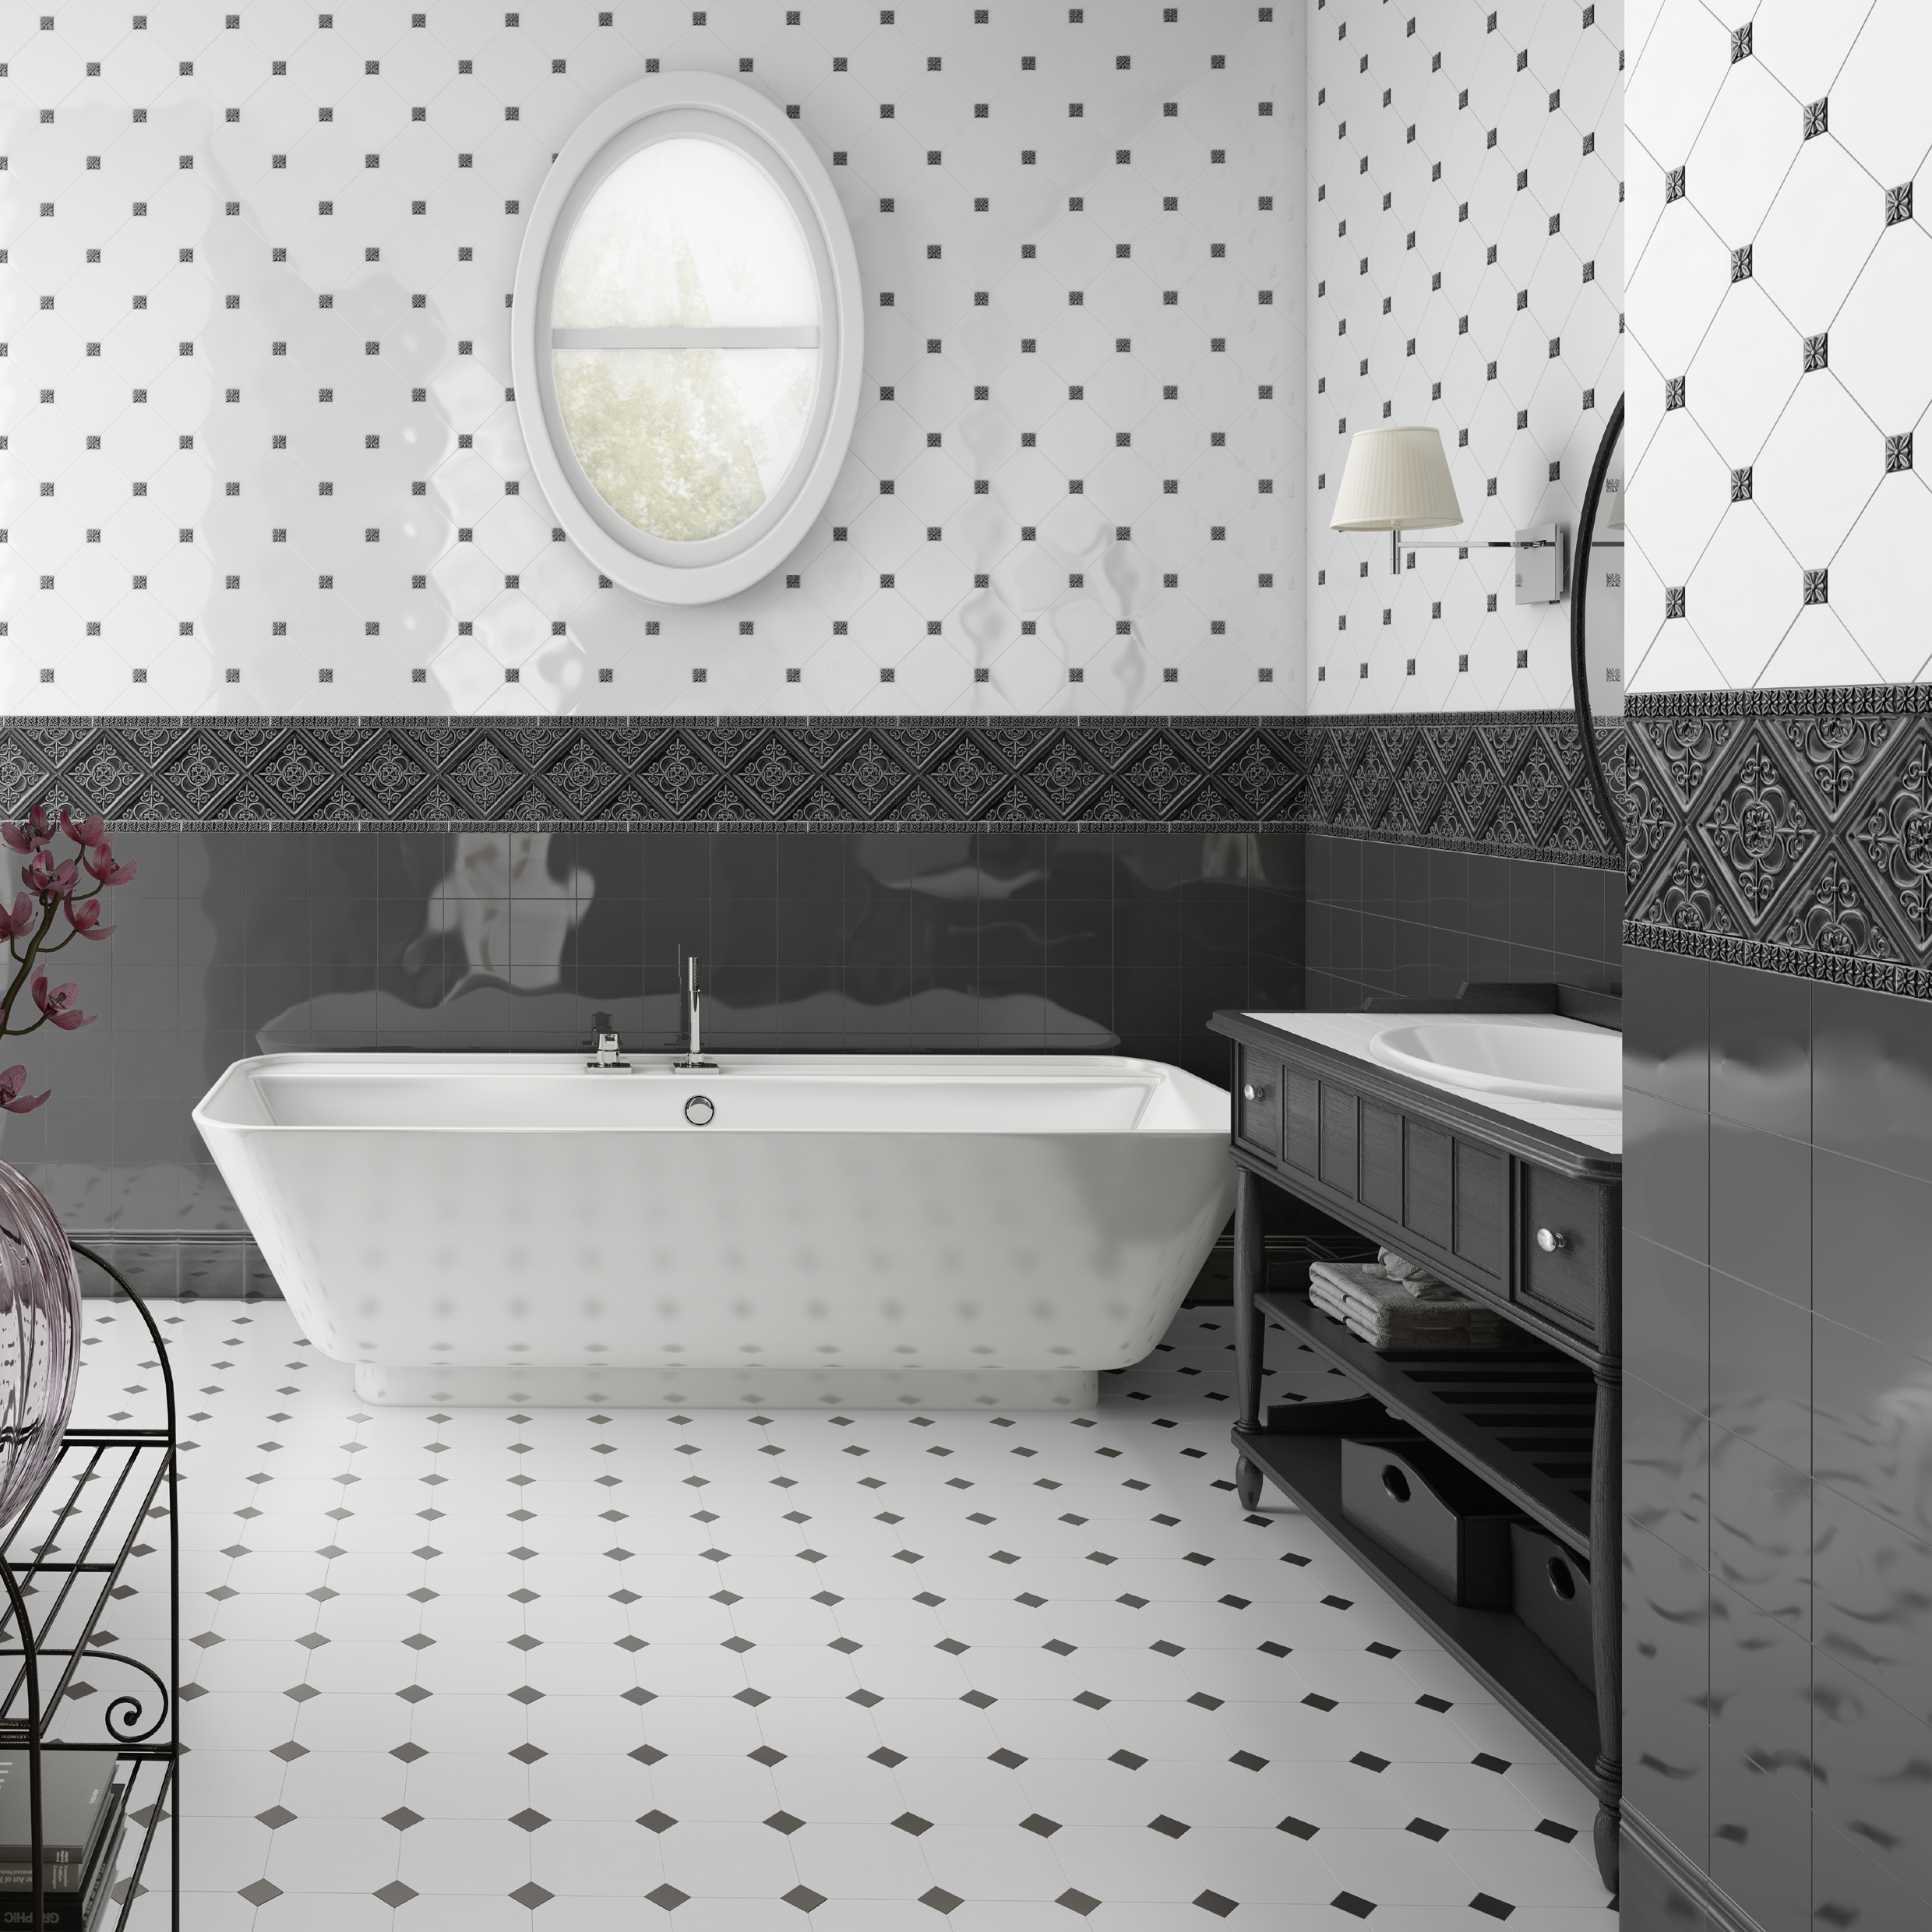 Tile Of Spain Explores New Ceramic Trends At Cersaie